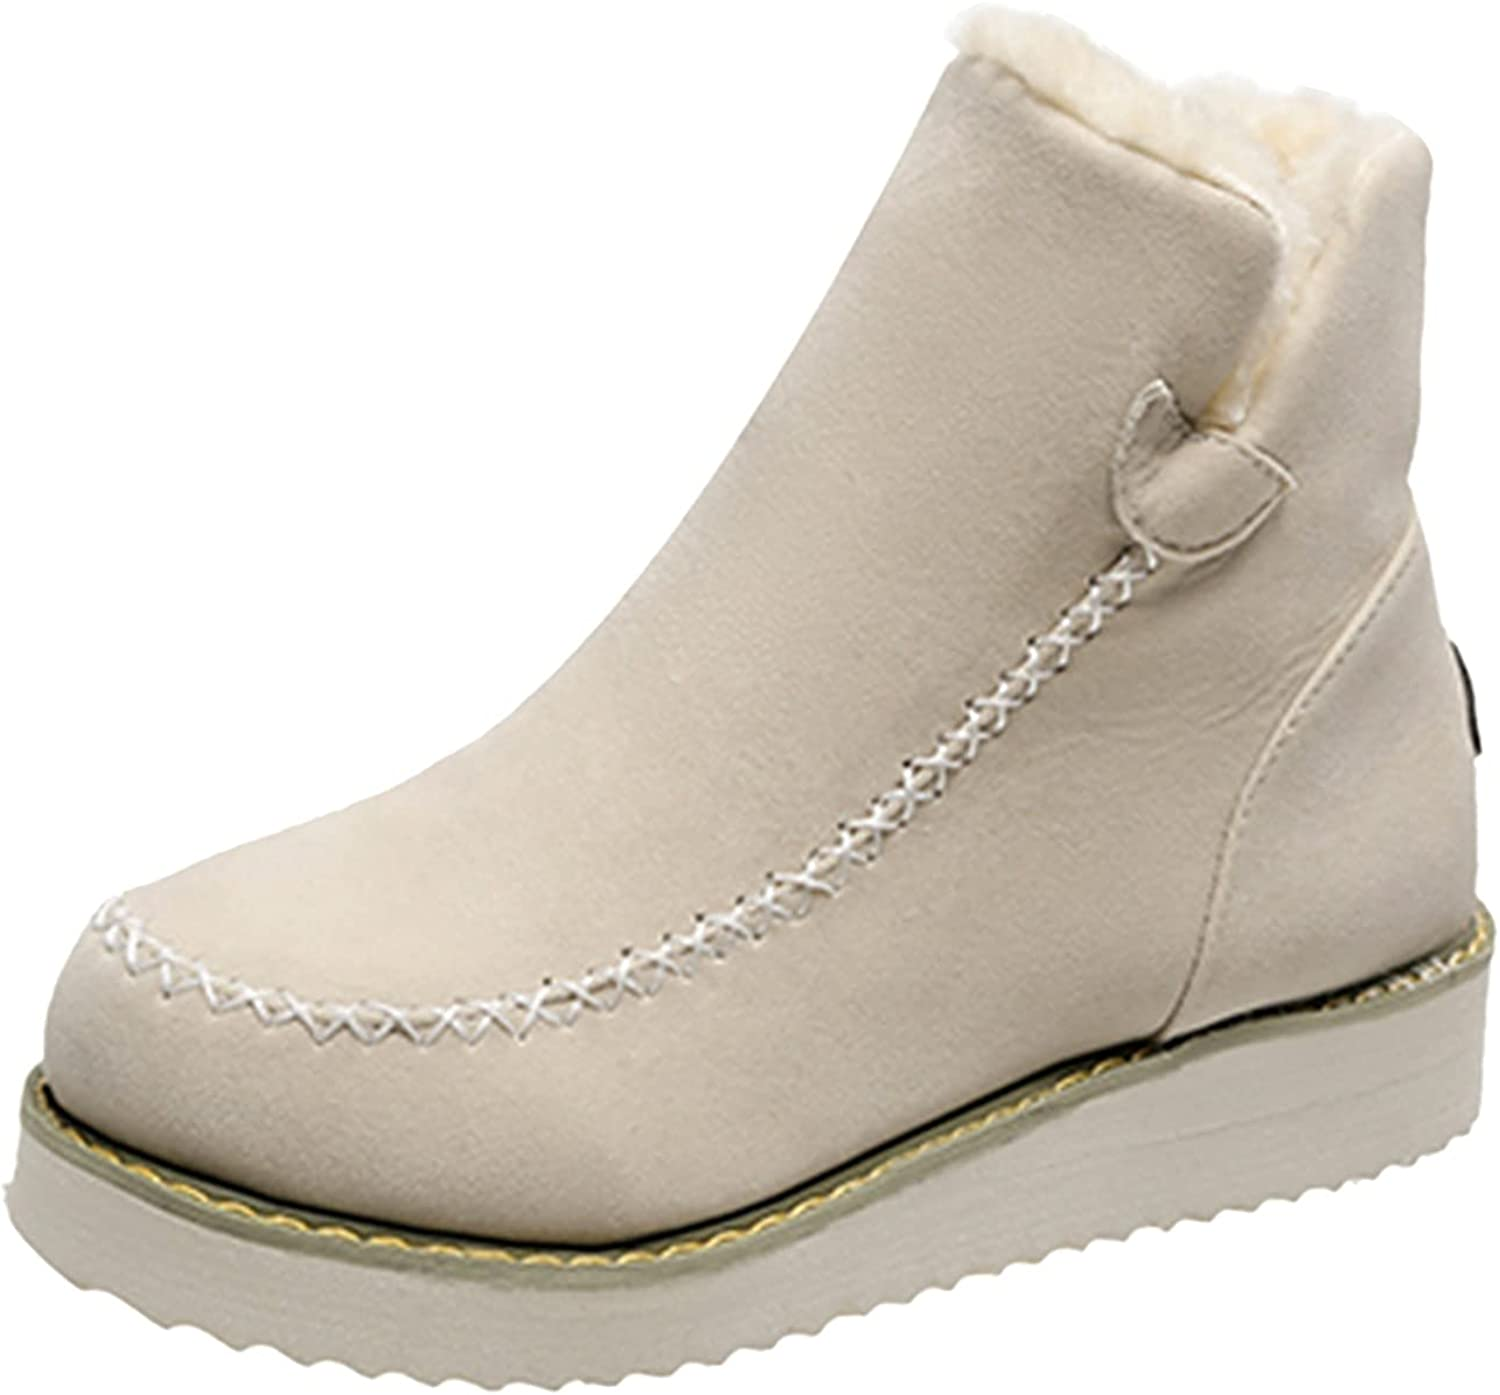 Euone_Clothes Boots for Women, Women's Shoes Round Toe Elastic M